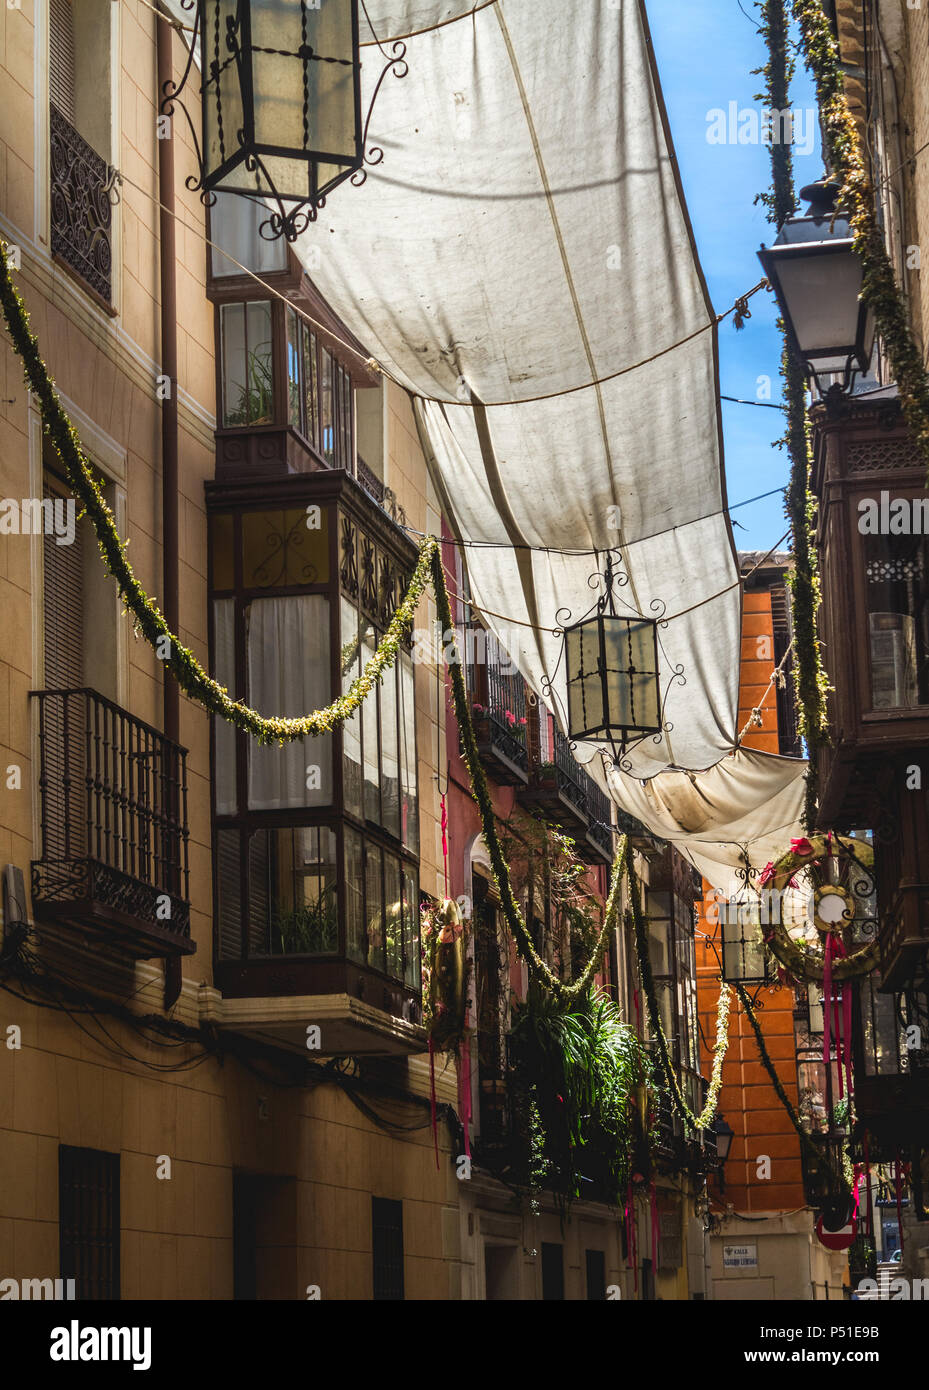 Blacony And Decorations In Spanish Historical Town Toledo